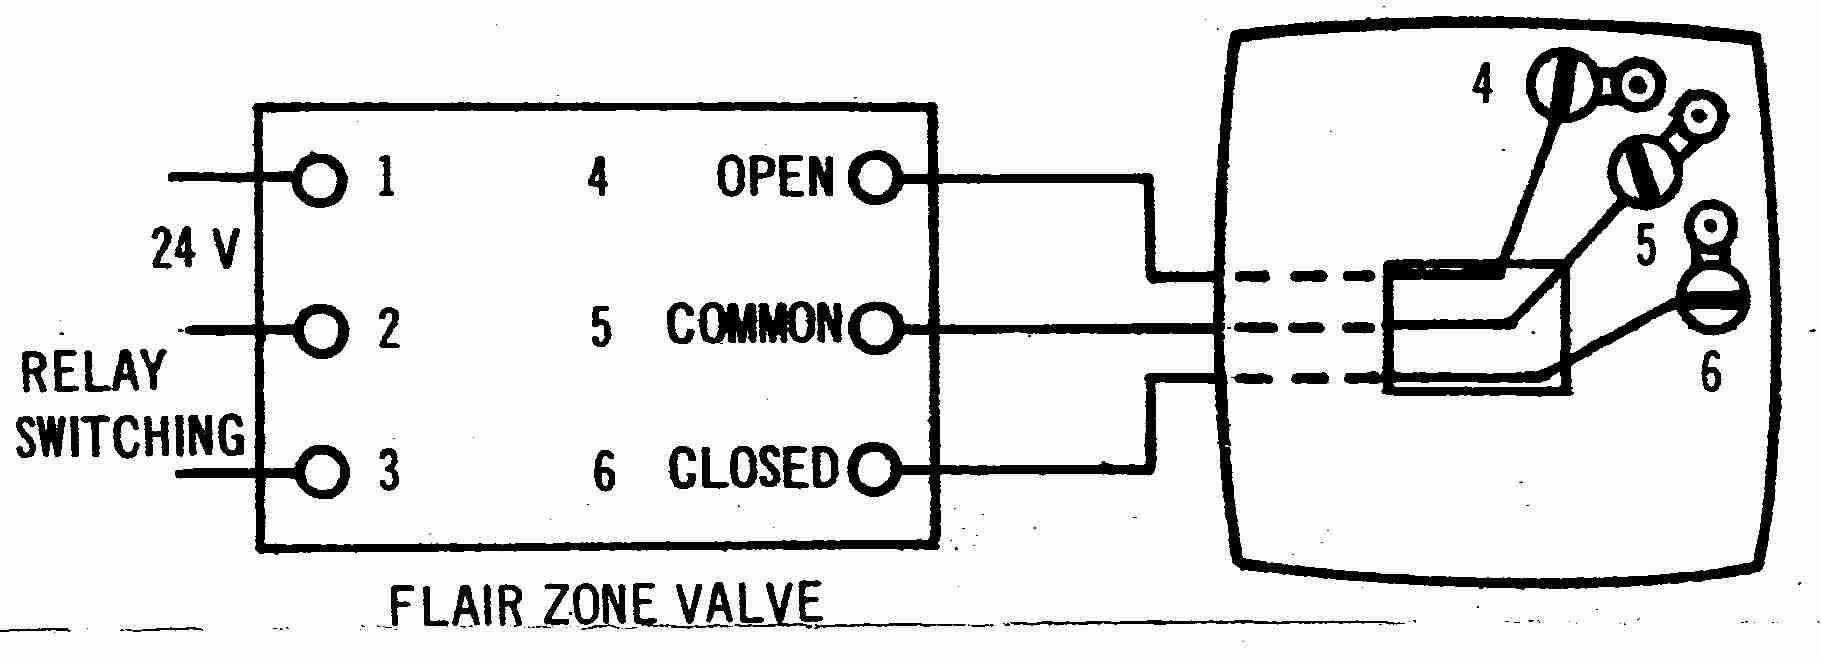 Zone Valve Wiring on double switch wiring diagram